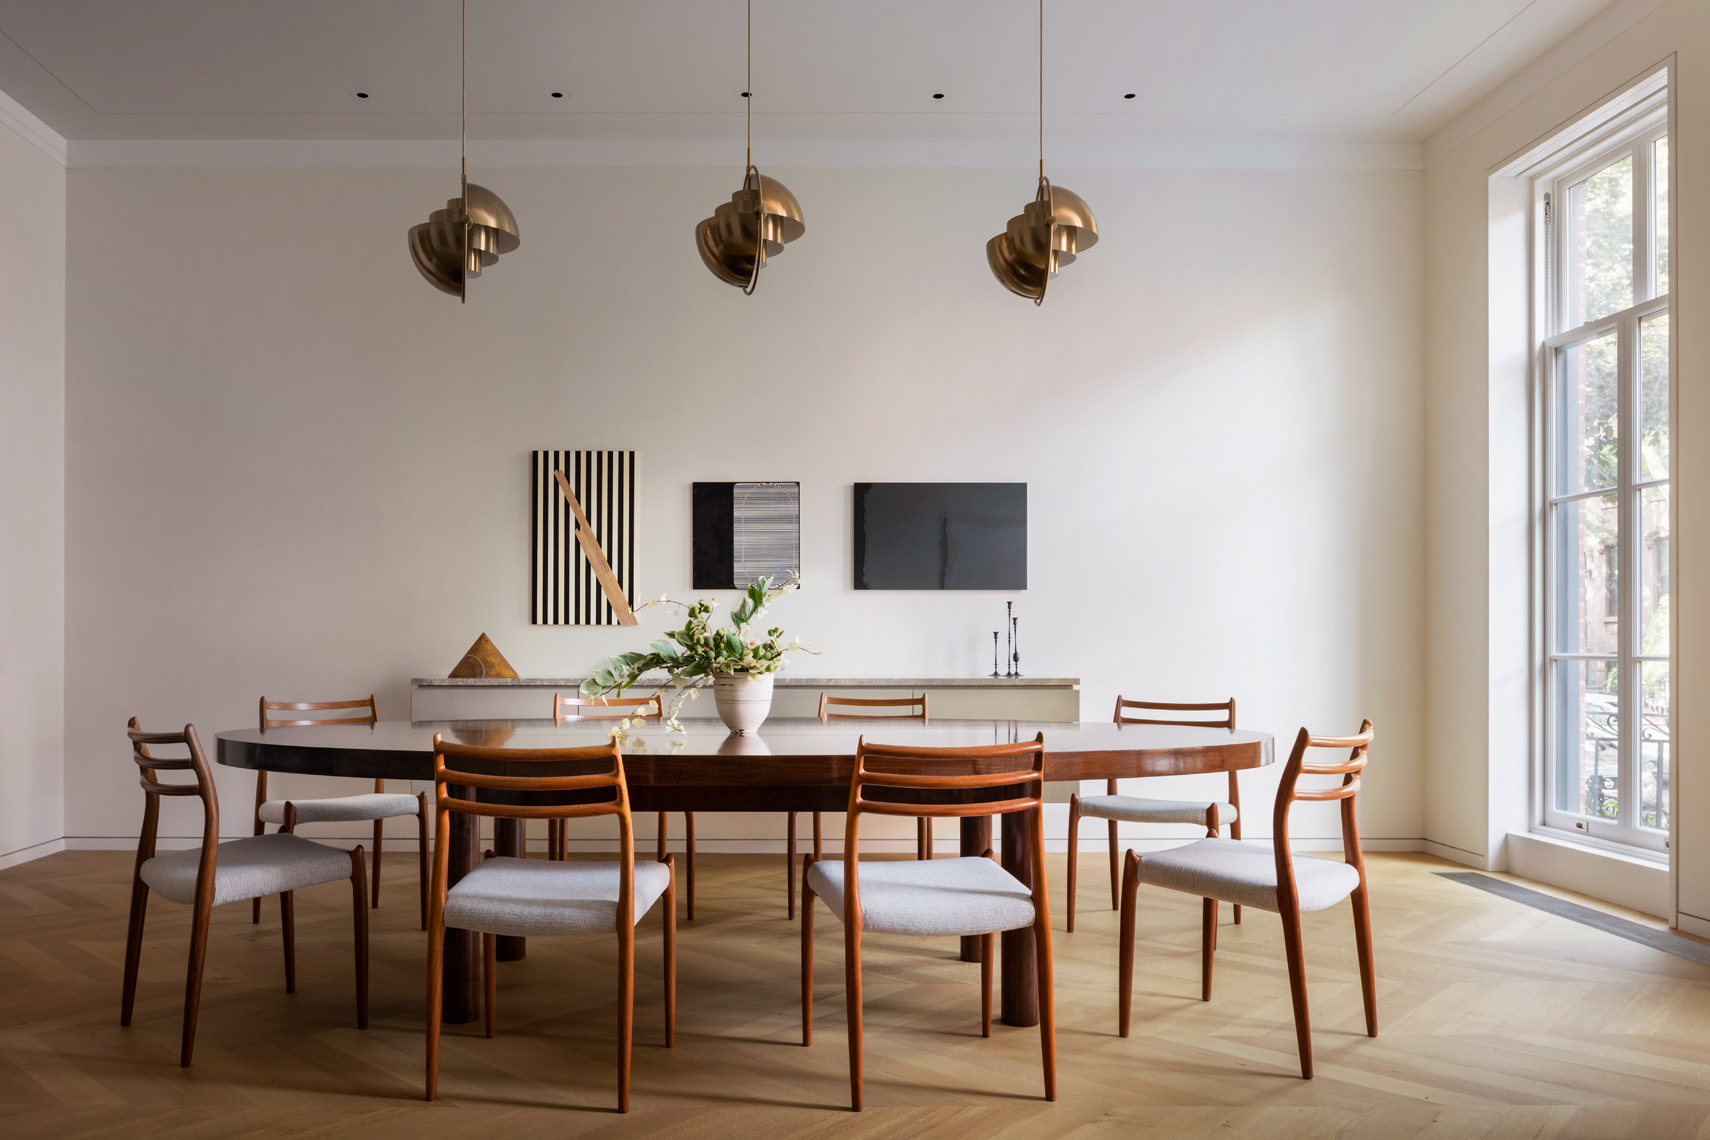 Dining Room, Steven Harris, Pendant Lights